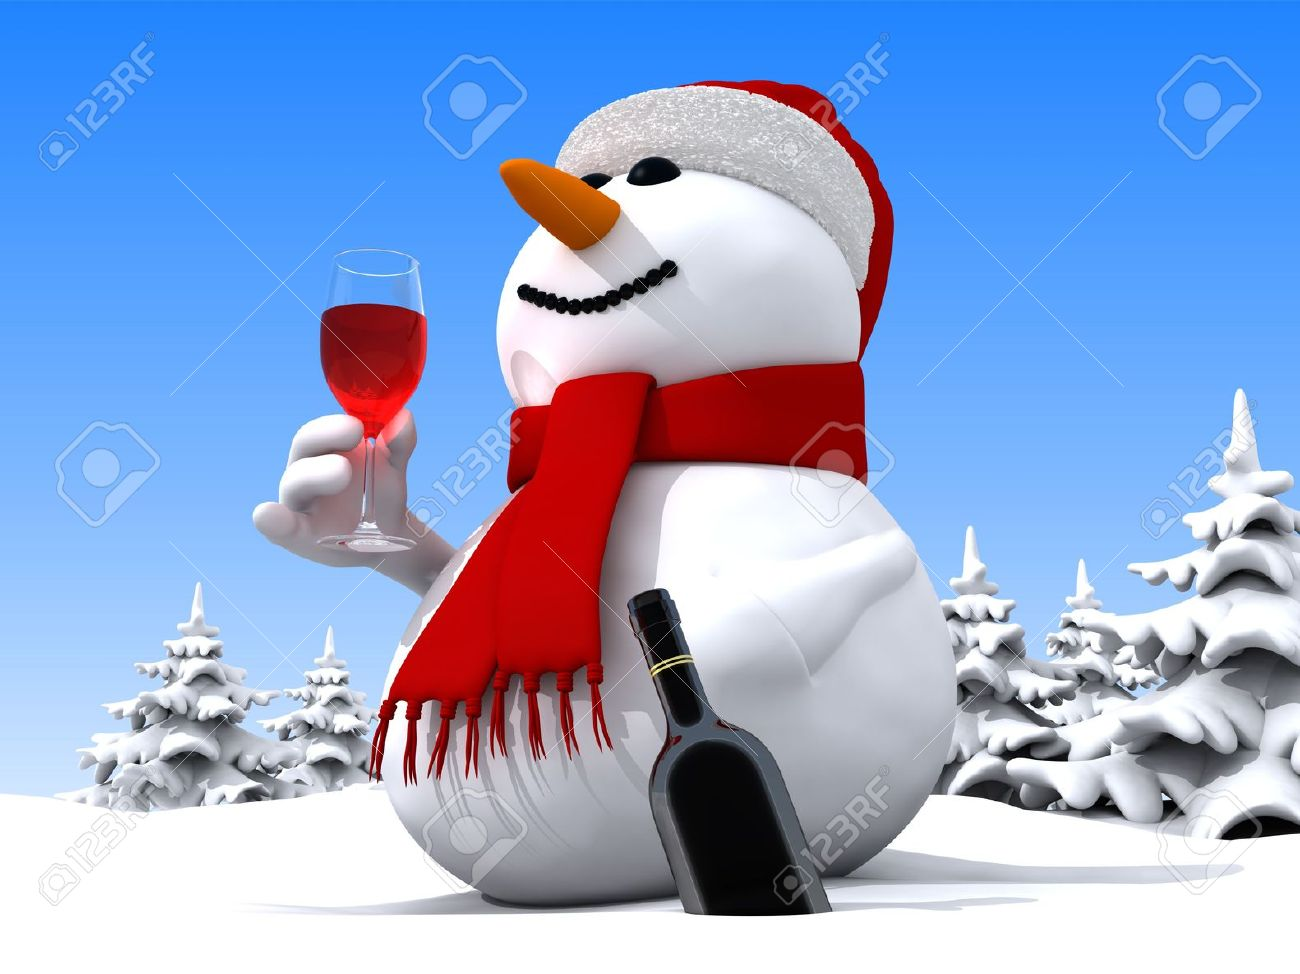 3D render of funny snowman Stock Photo - 6001458